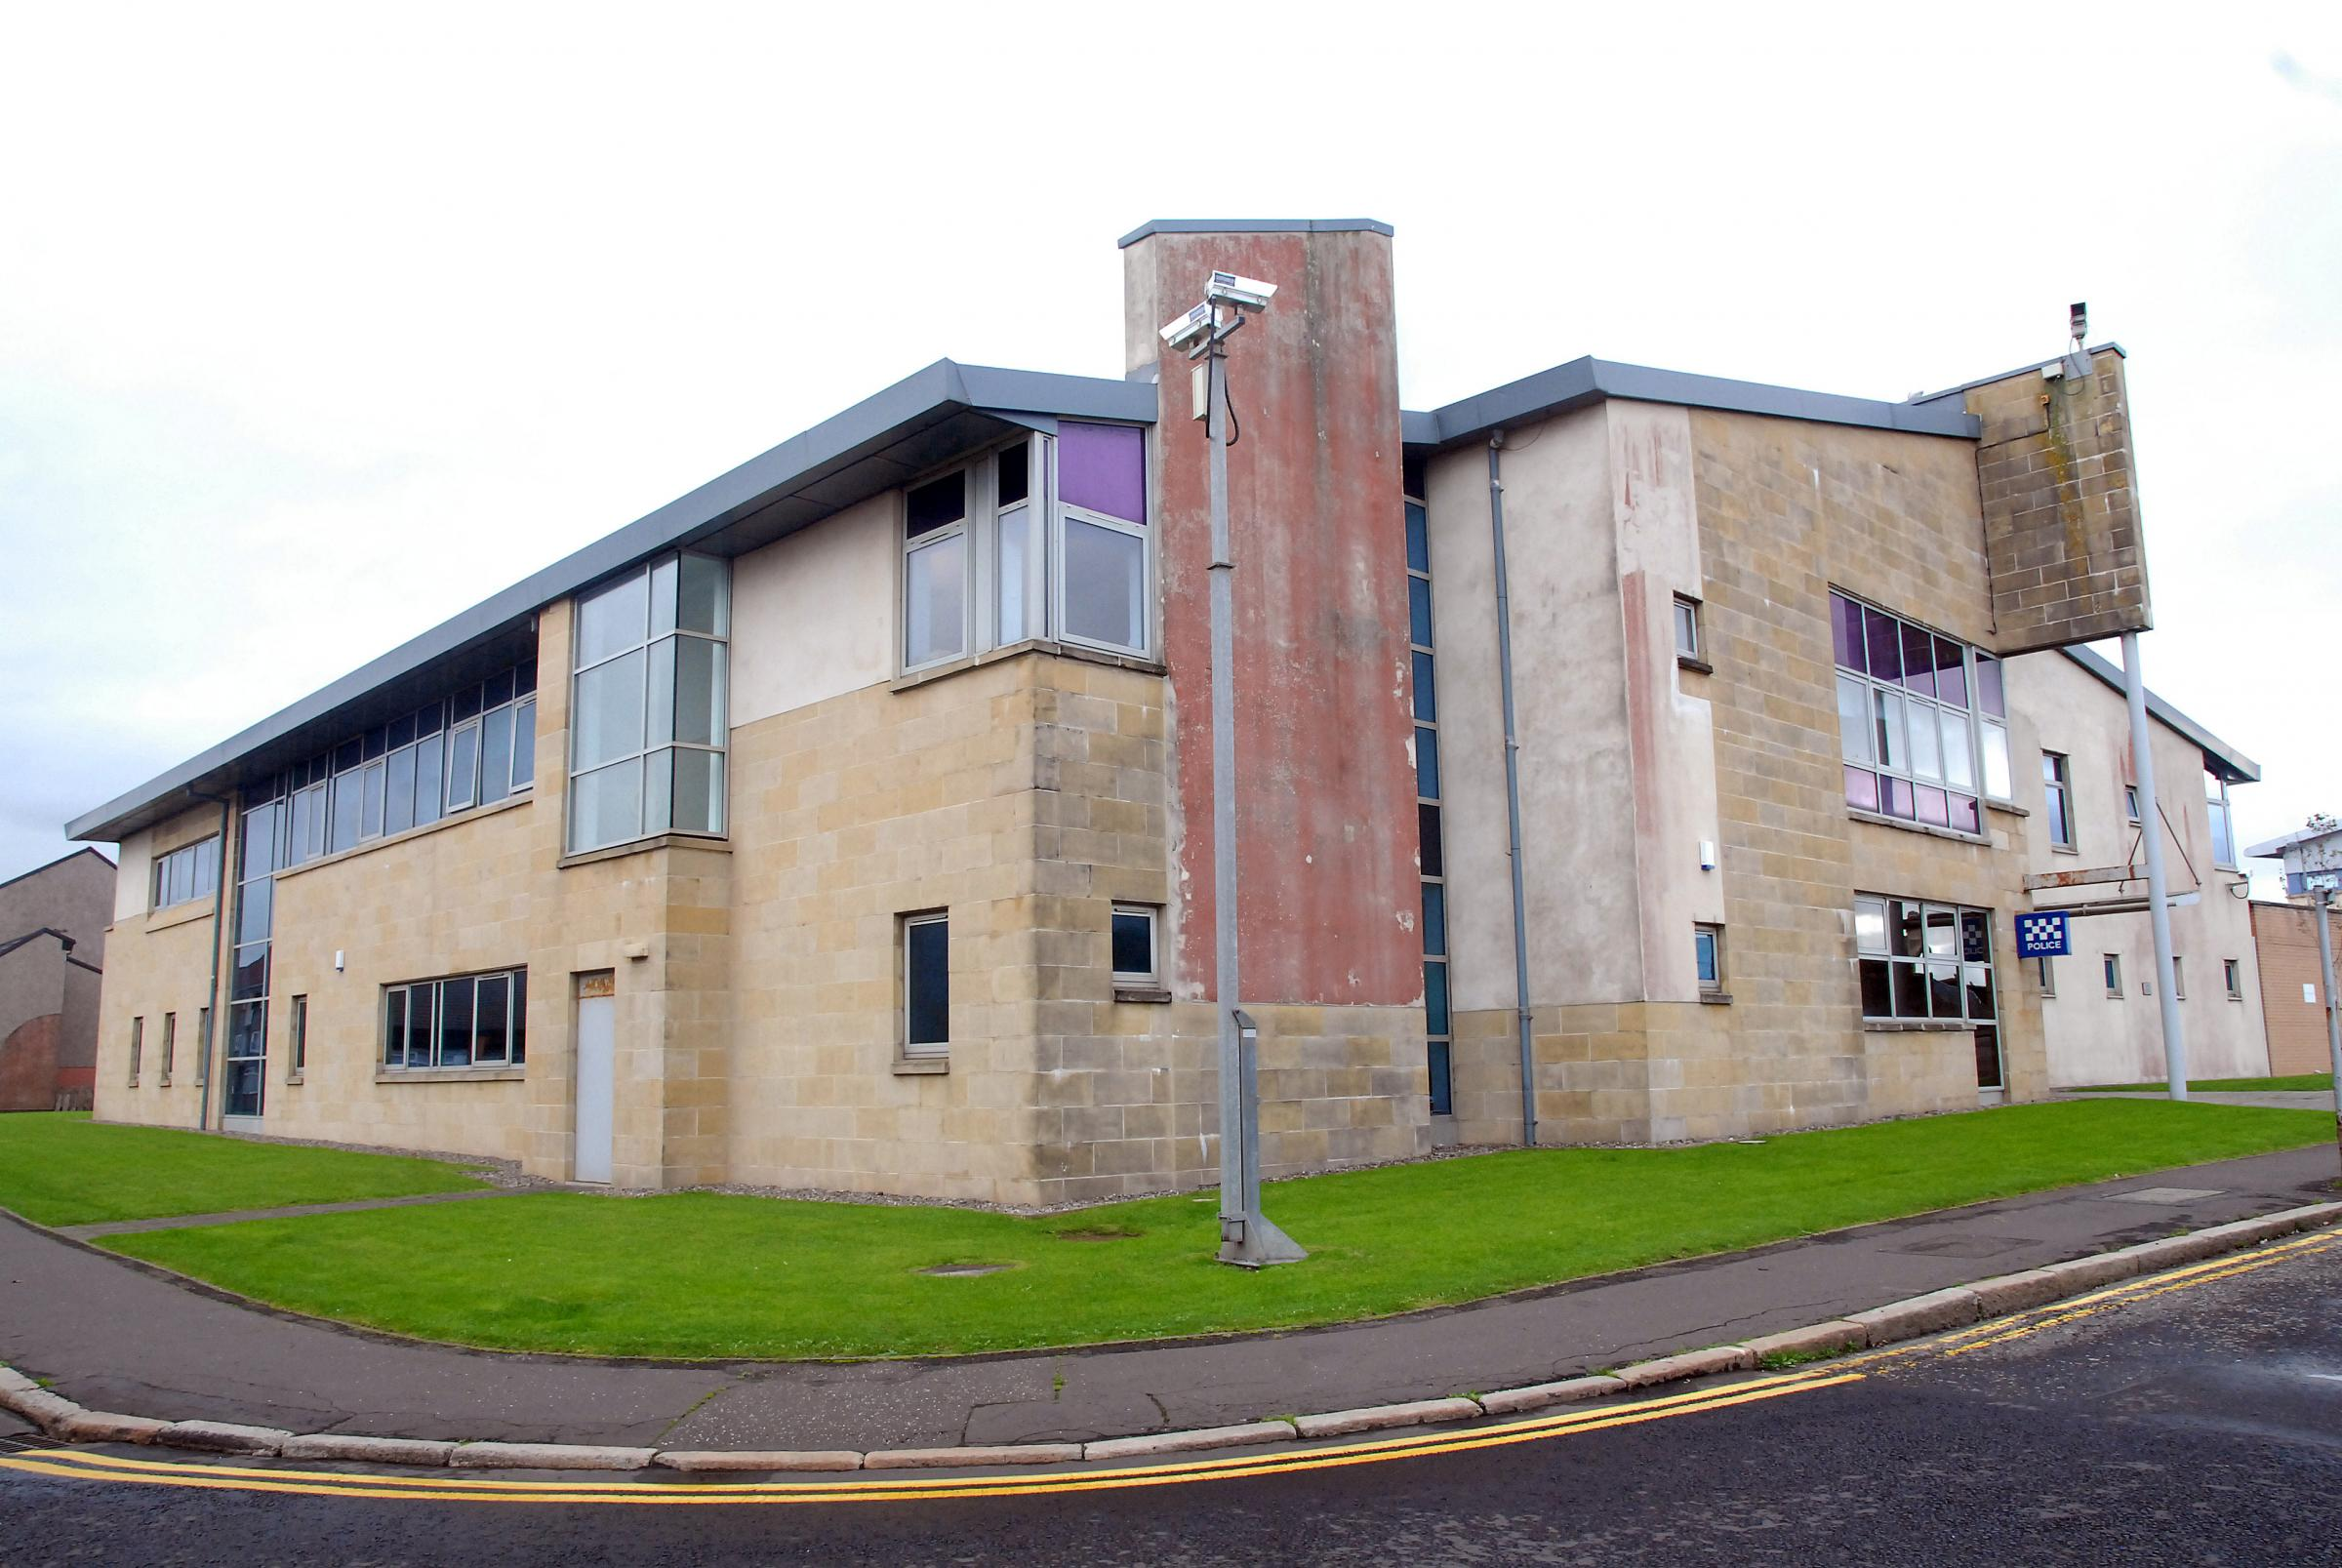 Kilwinning woman repeatedly kicked and spat at police